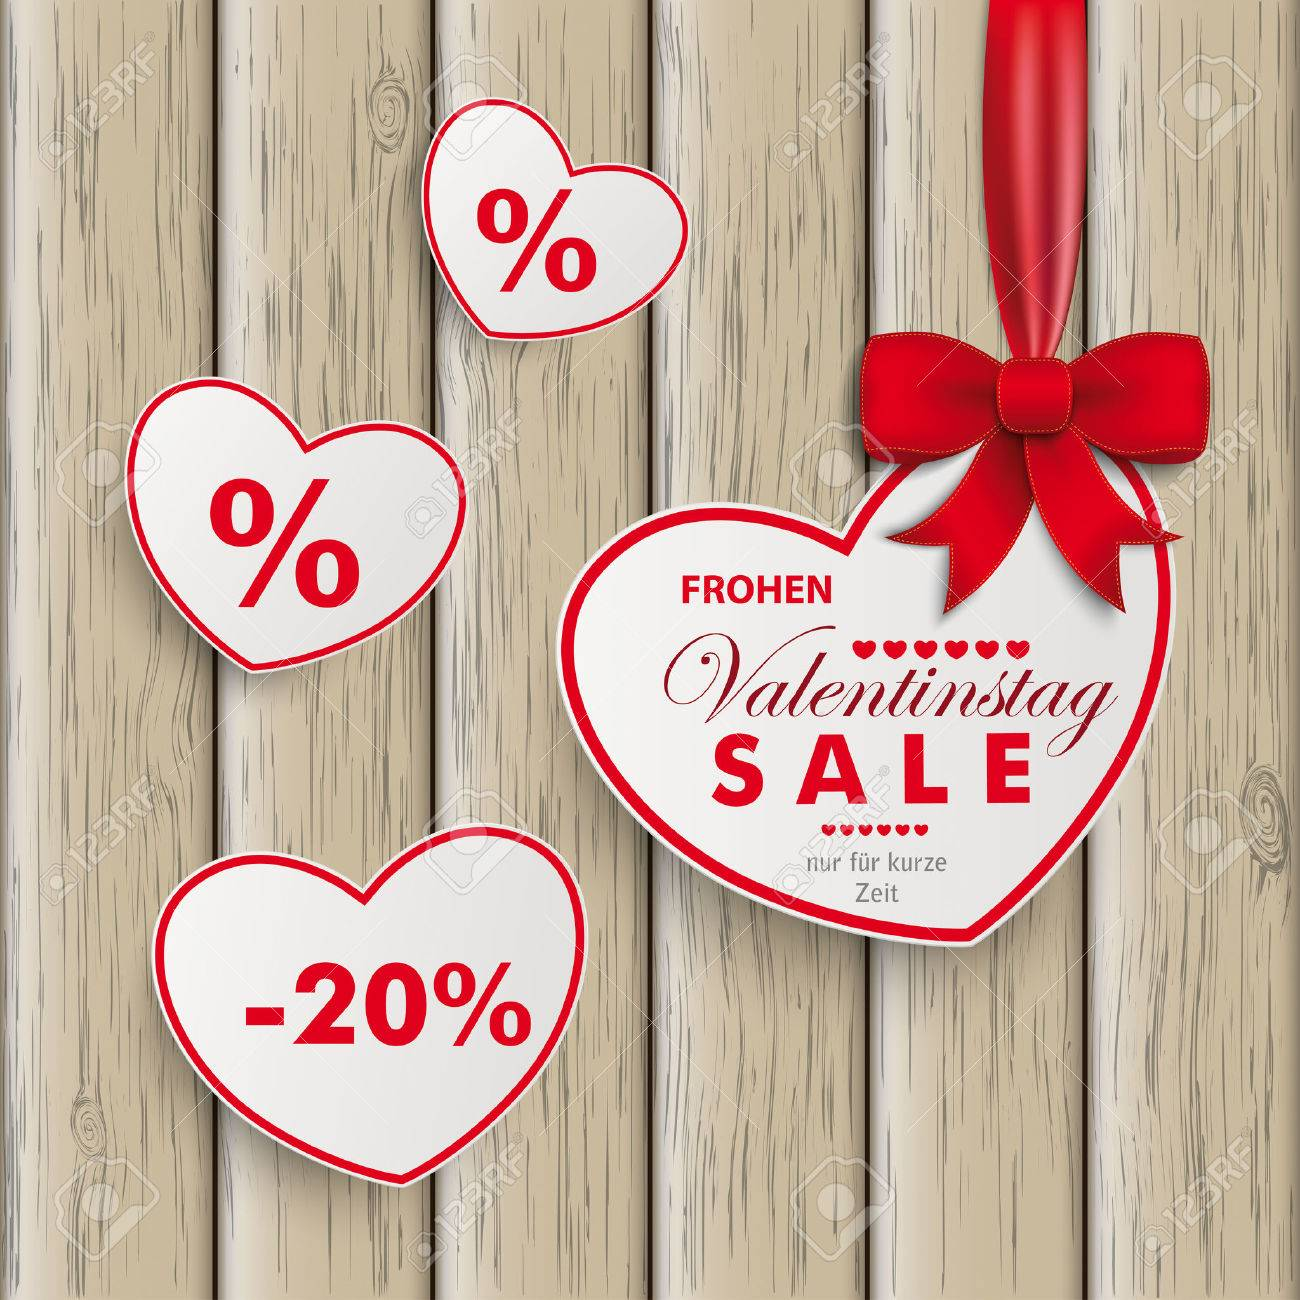 Elegant White Paper Hearts With Red Ribbon On The White Background. German Text